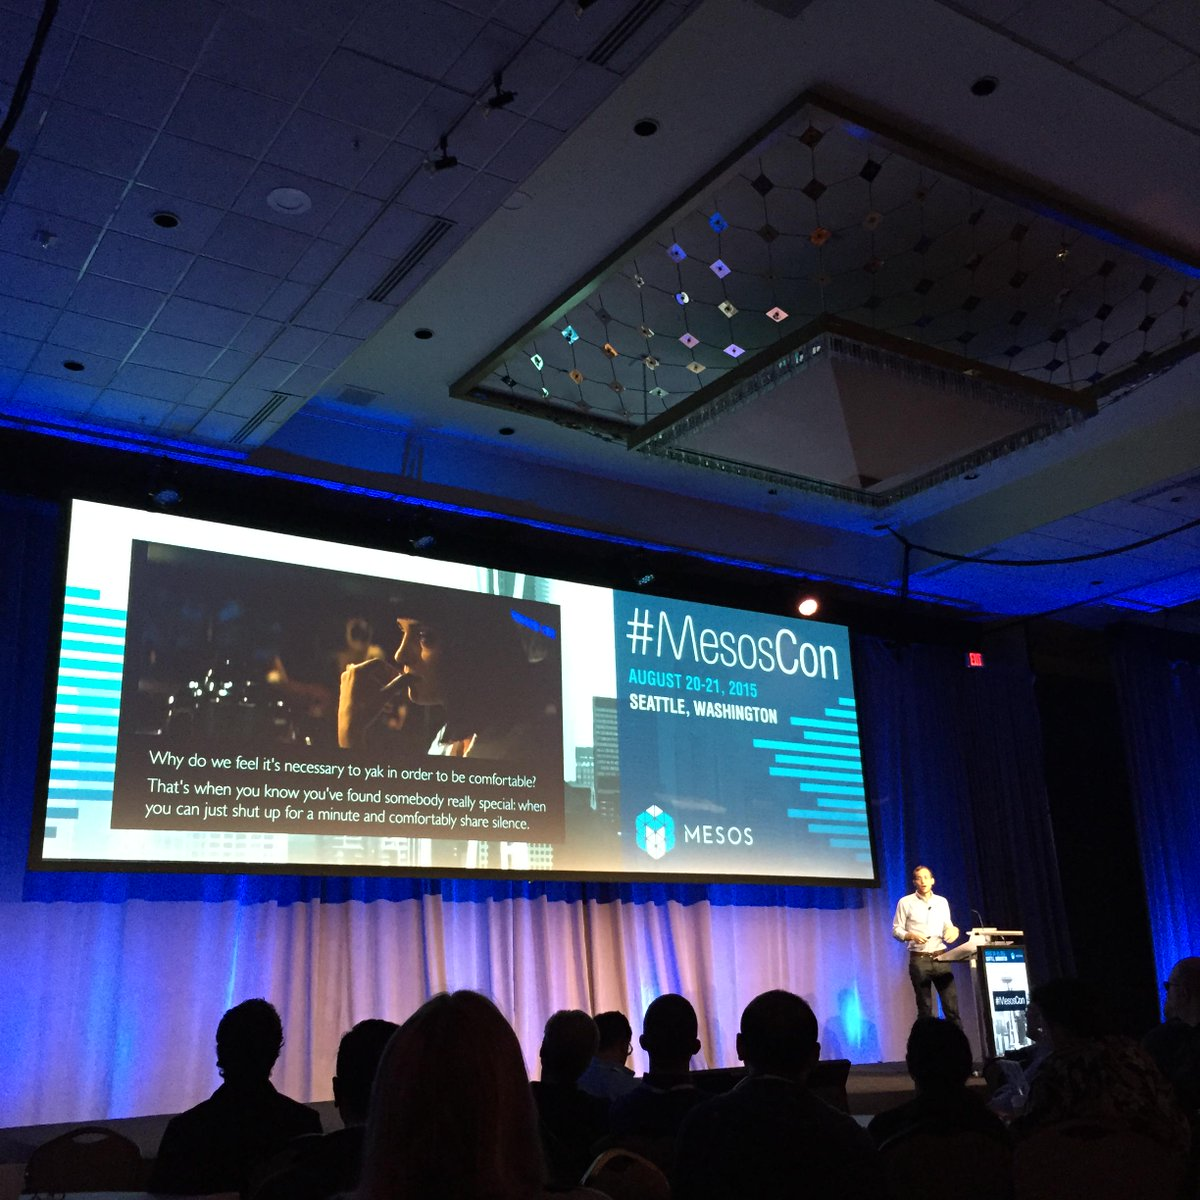 """#MesosCon @pbailis on coordination-free systems - """"Scalable systems can just shut up and comfortably share silence."""" http://t.co/OUnYdIbSrL"""